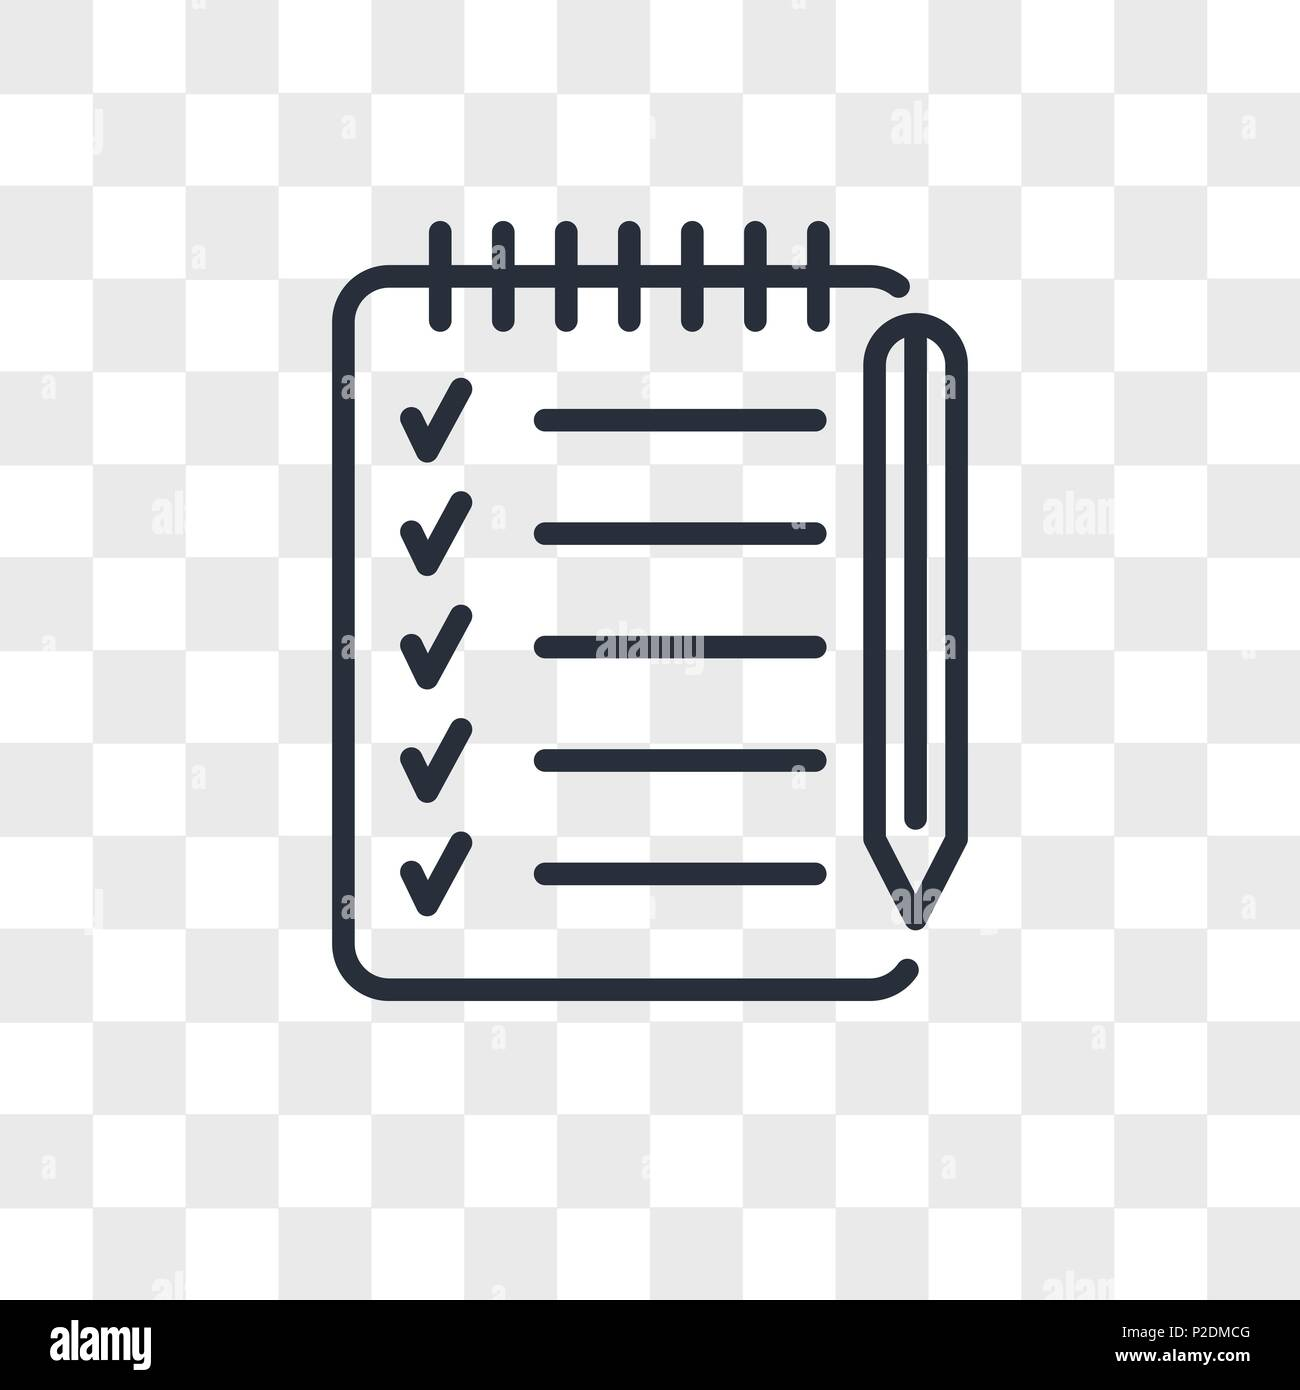 checklist vector icon isolated on transparent background, checklist